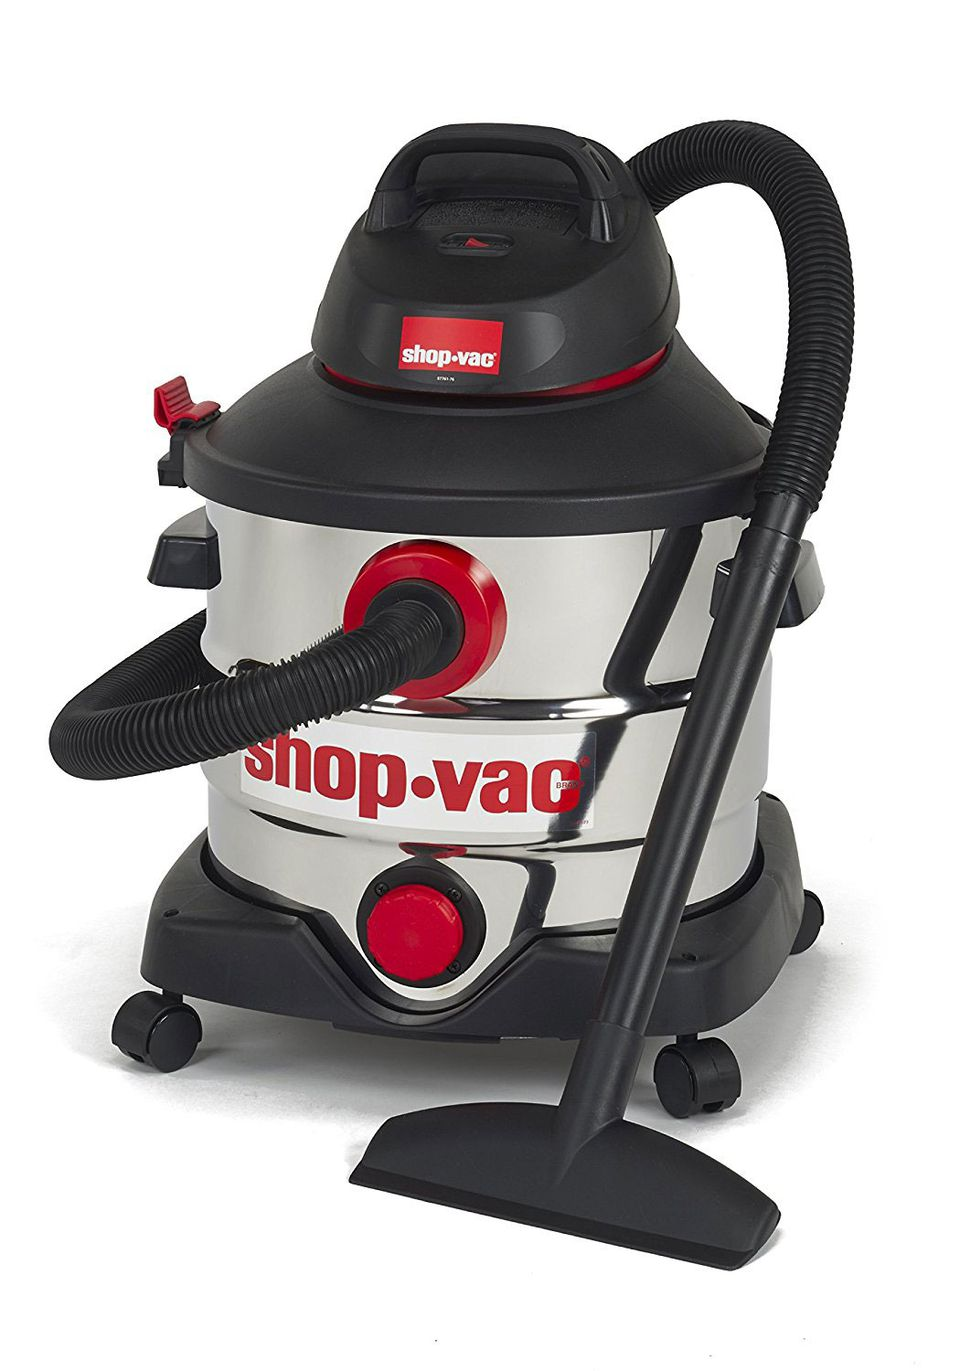 shop vac for leaves shop vac vacuums to clean driveways review 5196